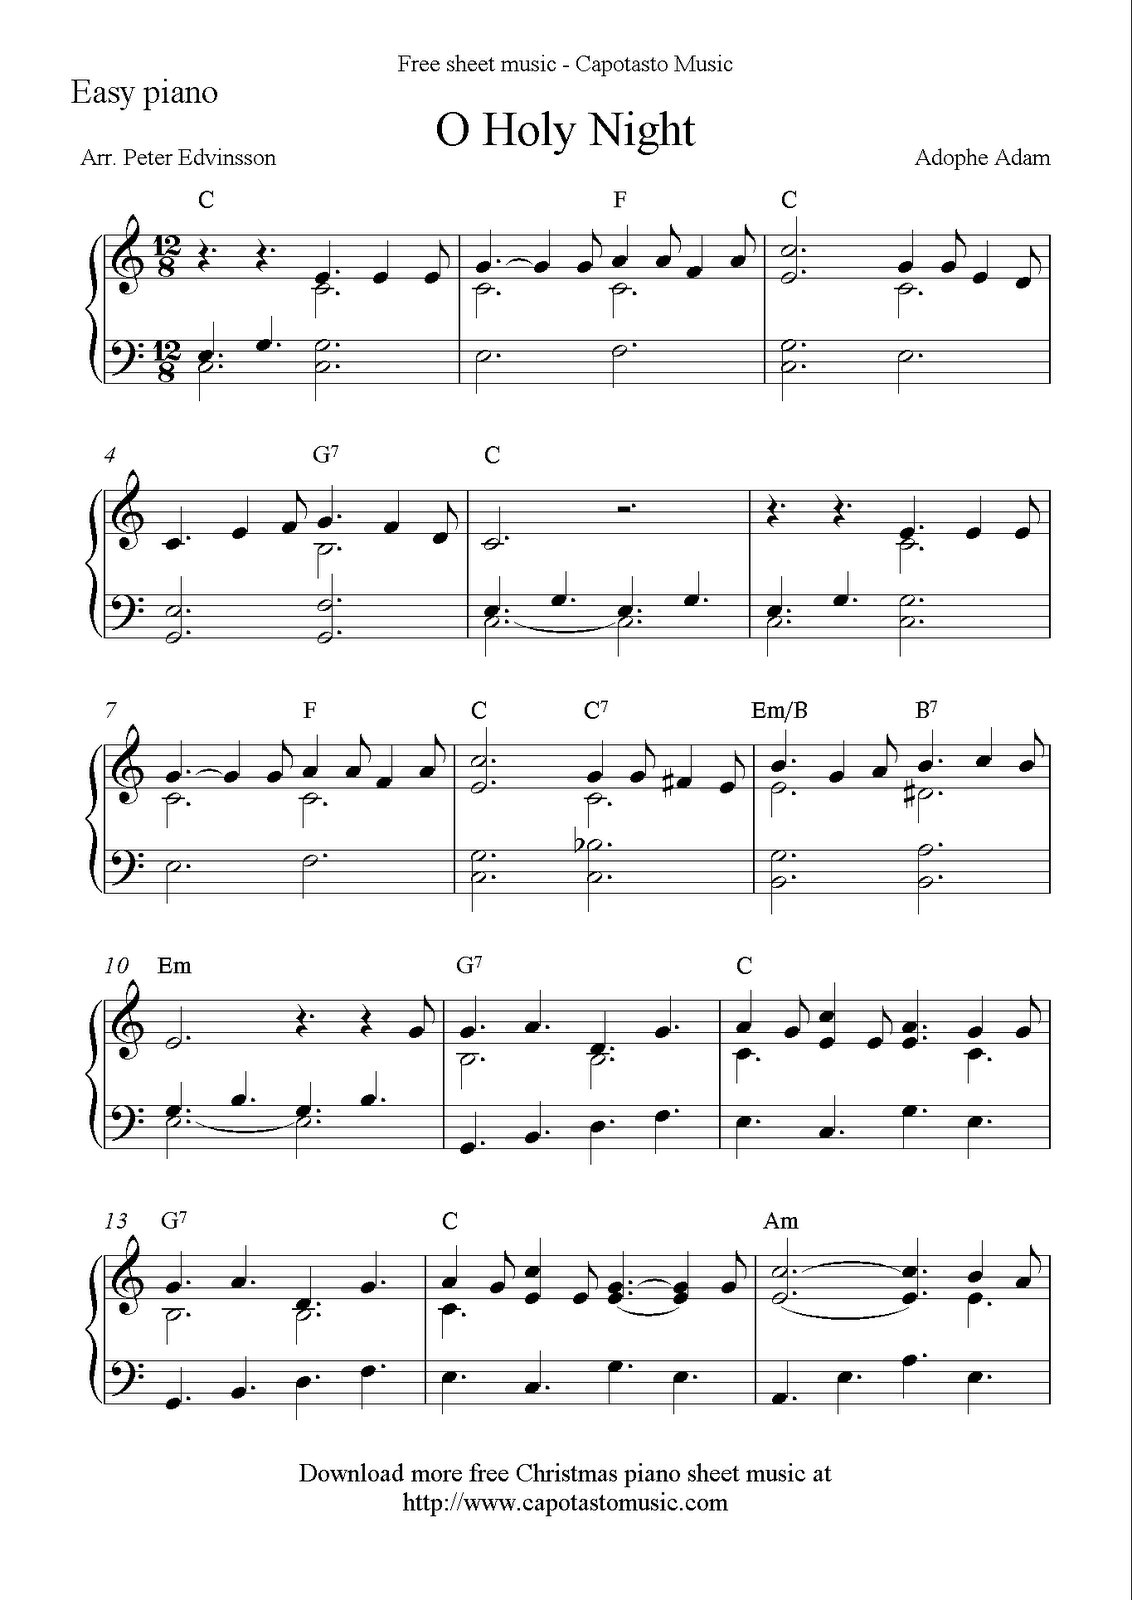 Free Sheet Music Scores: Free Easy Christmas Piano Sheet Music, O - Free Printable Sheet Music For Piano